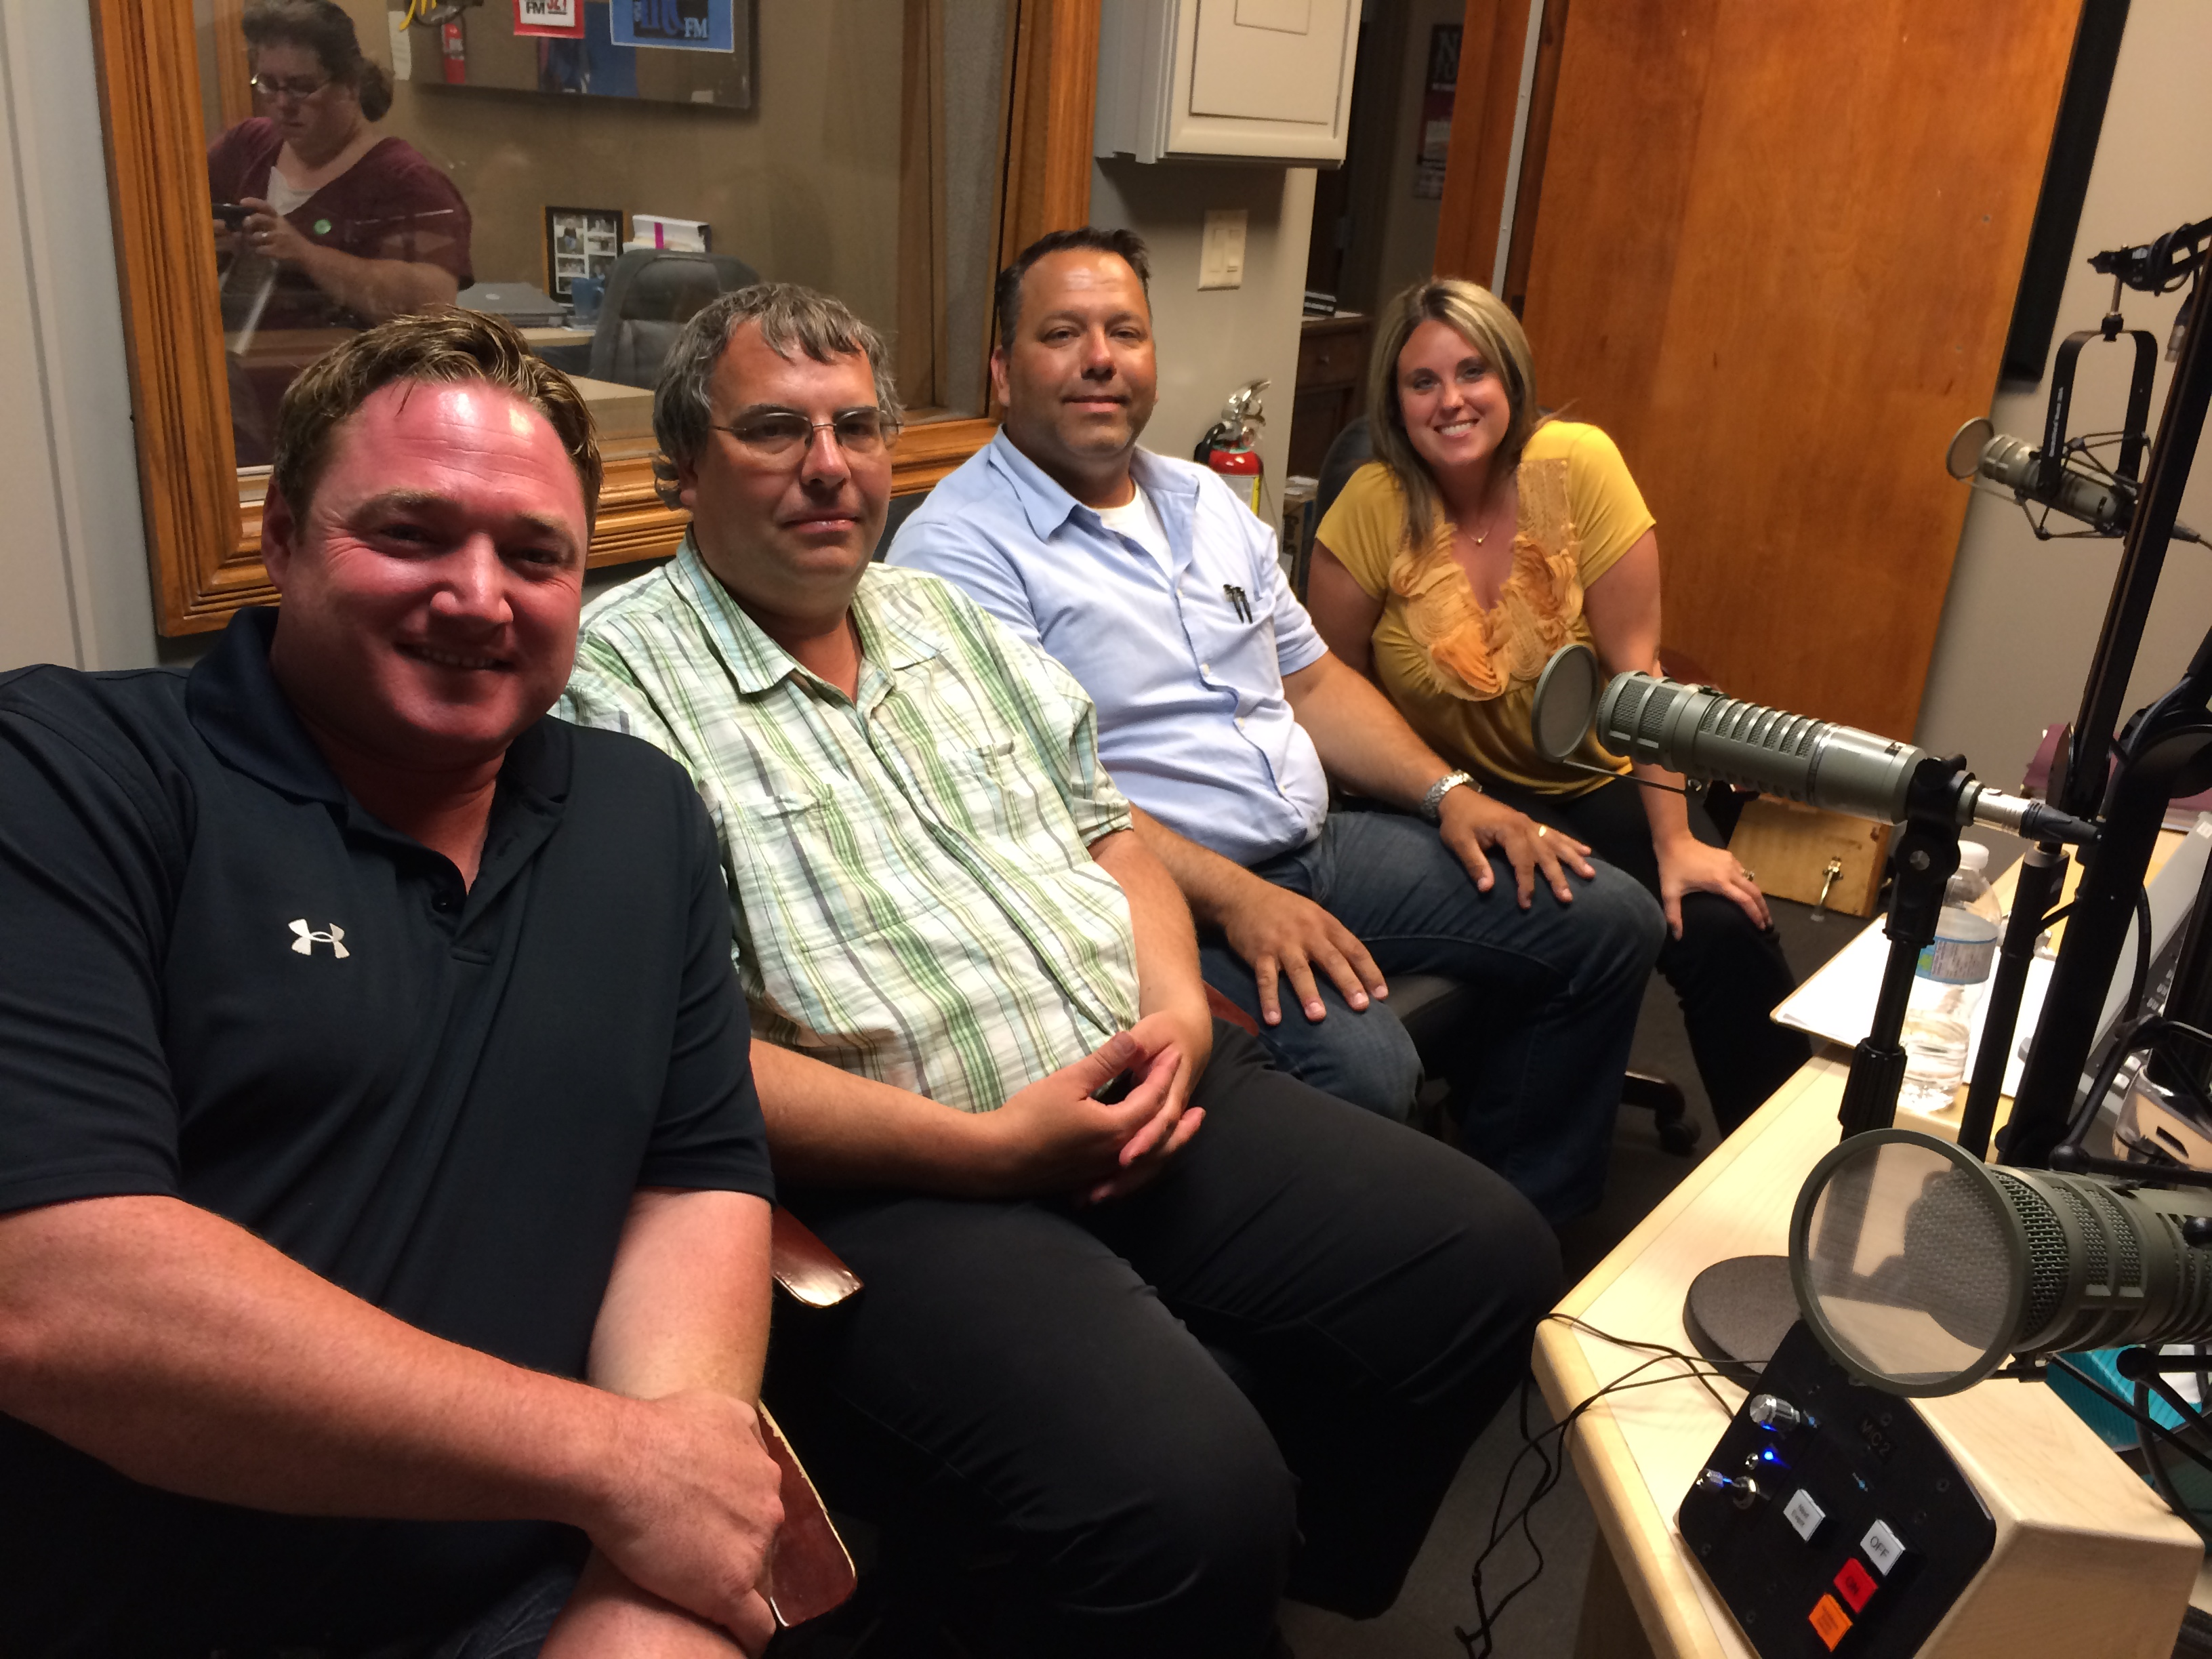 Candidates in the Essex riding for the Ontario 2014 election attend radio debate at Blackburn Radio studios in Leamington on June 10, 2014. From left to right: NDP incumbent Taras Natyshak, Green candidate Mark Vercouteren, PC candidate Ray Cecile, Liberal candidate Crystal Meloche. (Photo by Ricardo Veneza)